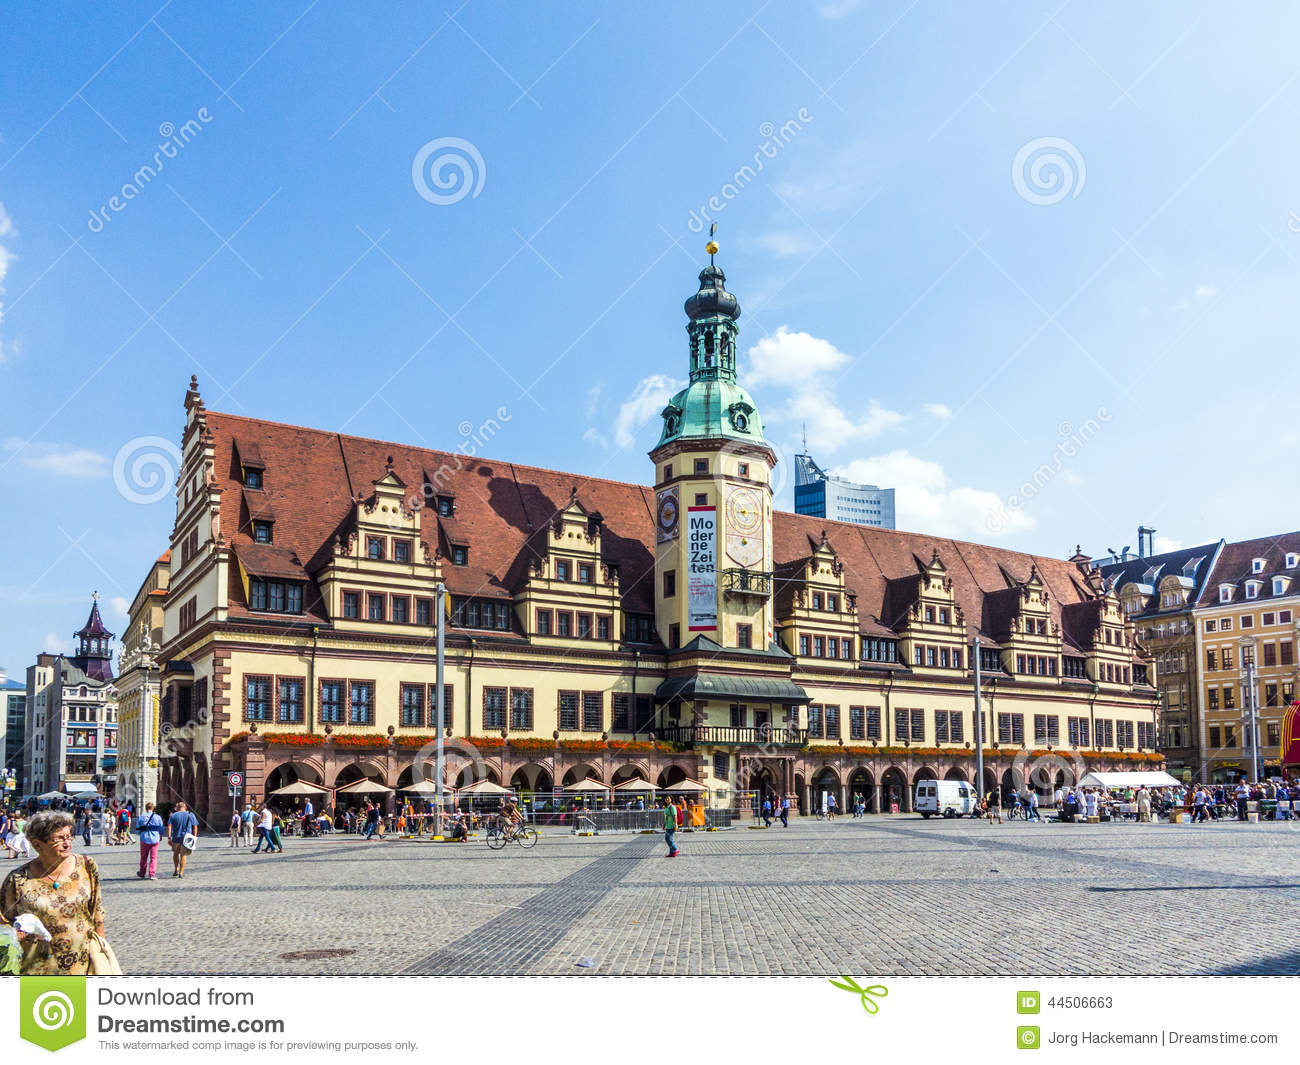 Old Town Hall At Market Square In Leipzig Editorial Stock Photo Image Of Largest Architecture 44506663